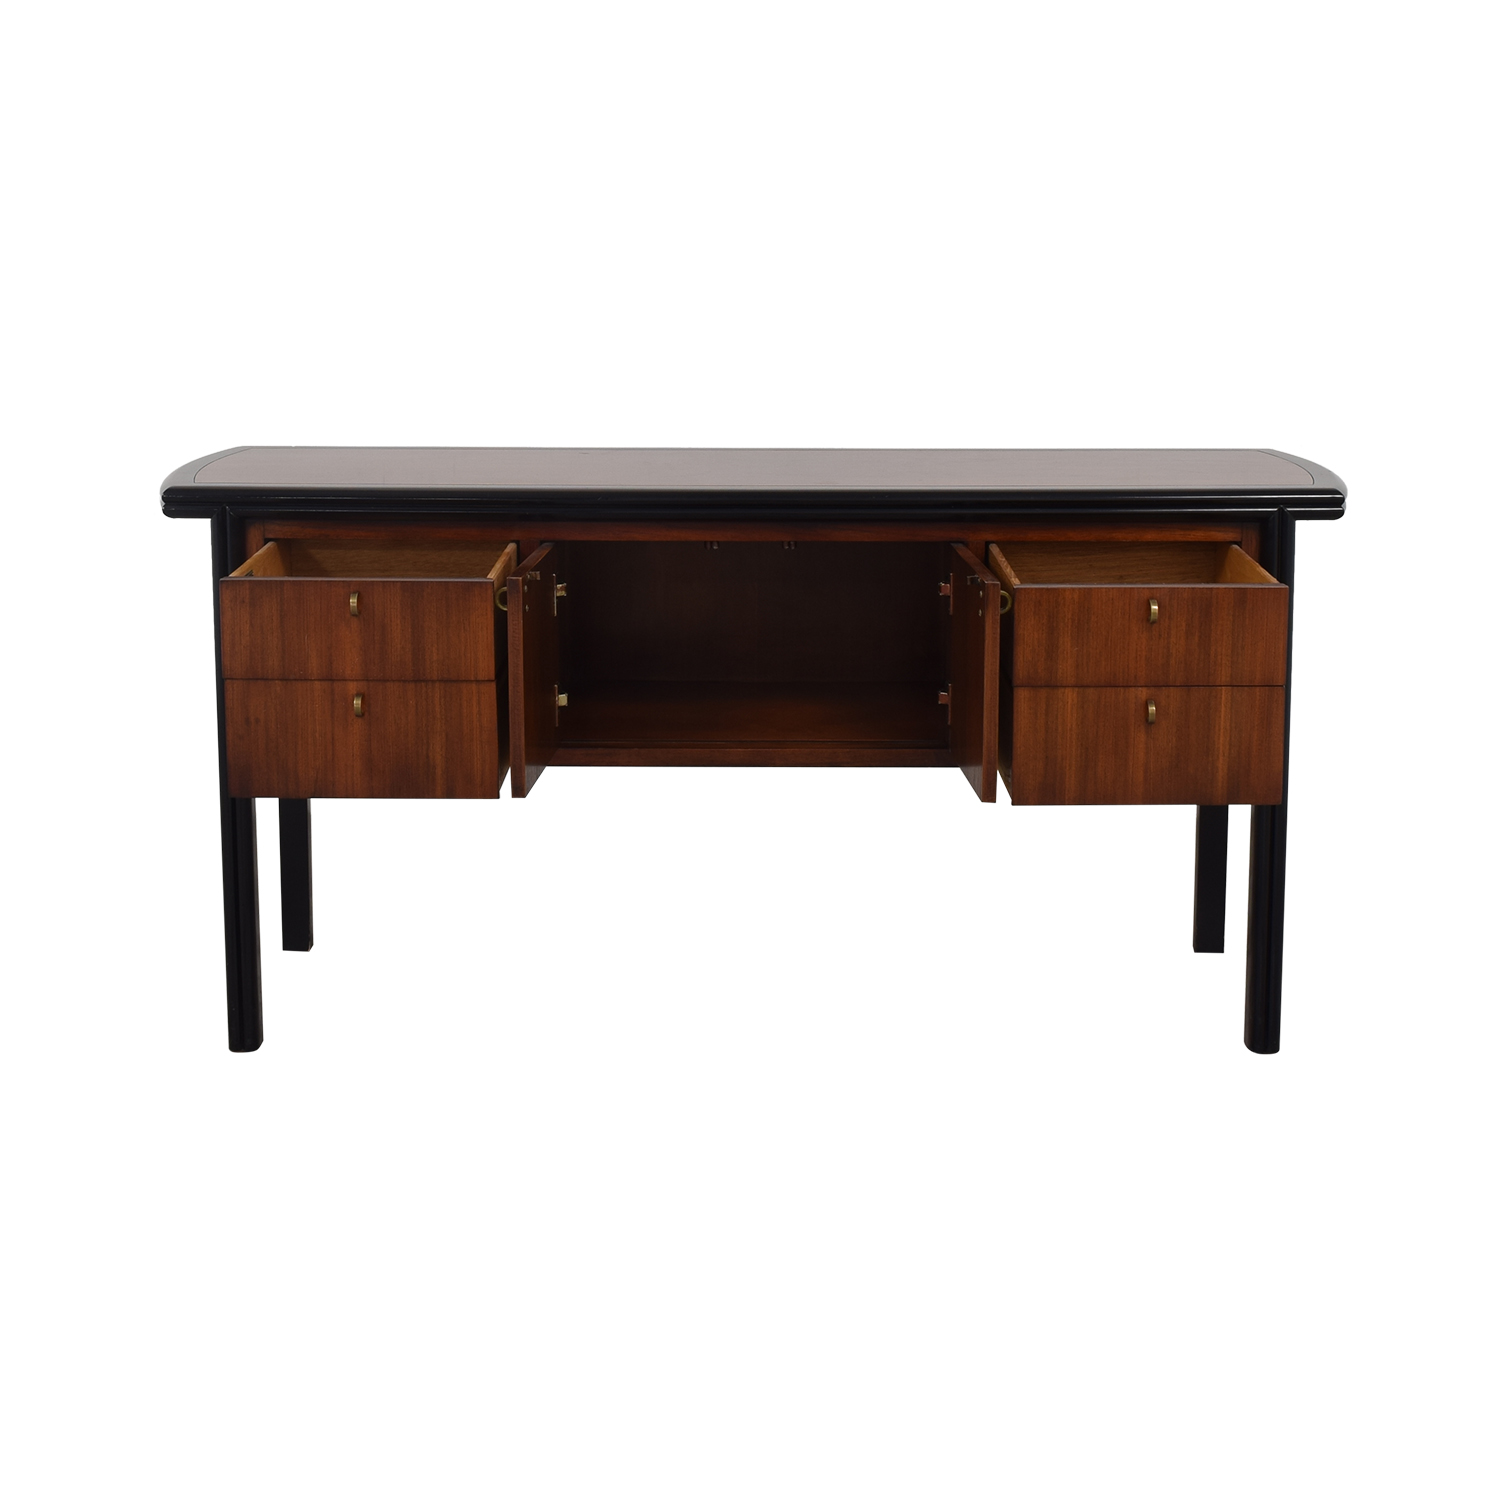 Century Furniture Century Buffet Table Cabinets & Sideboards